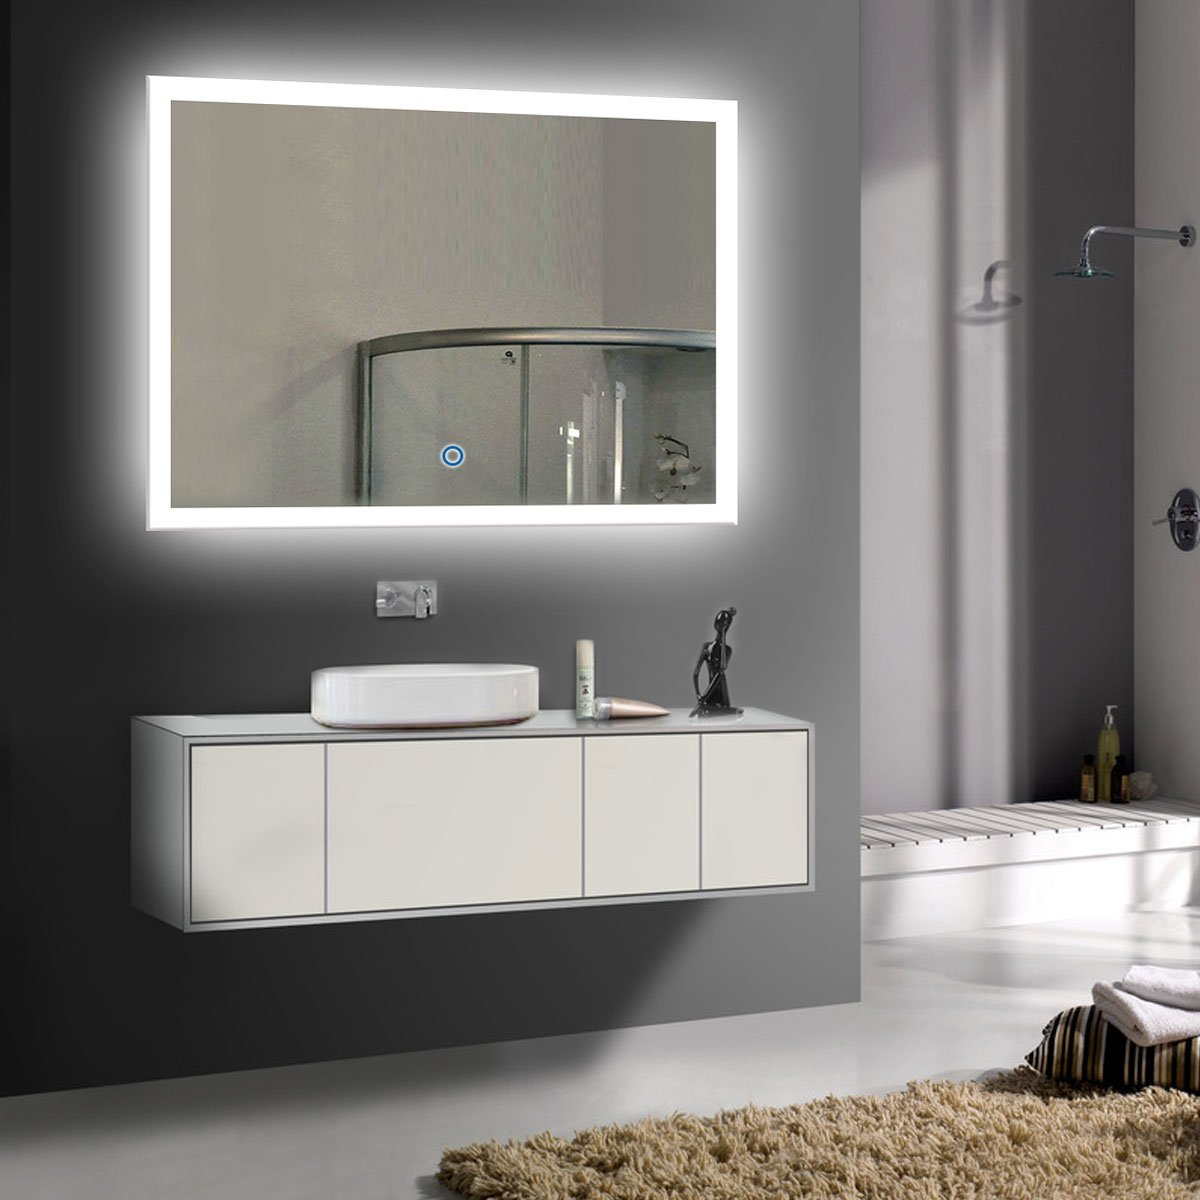 Beautiful Mirrored Light Bar for Bathroom